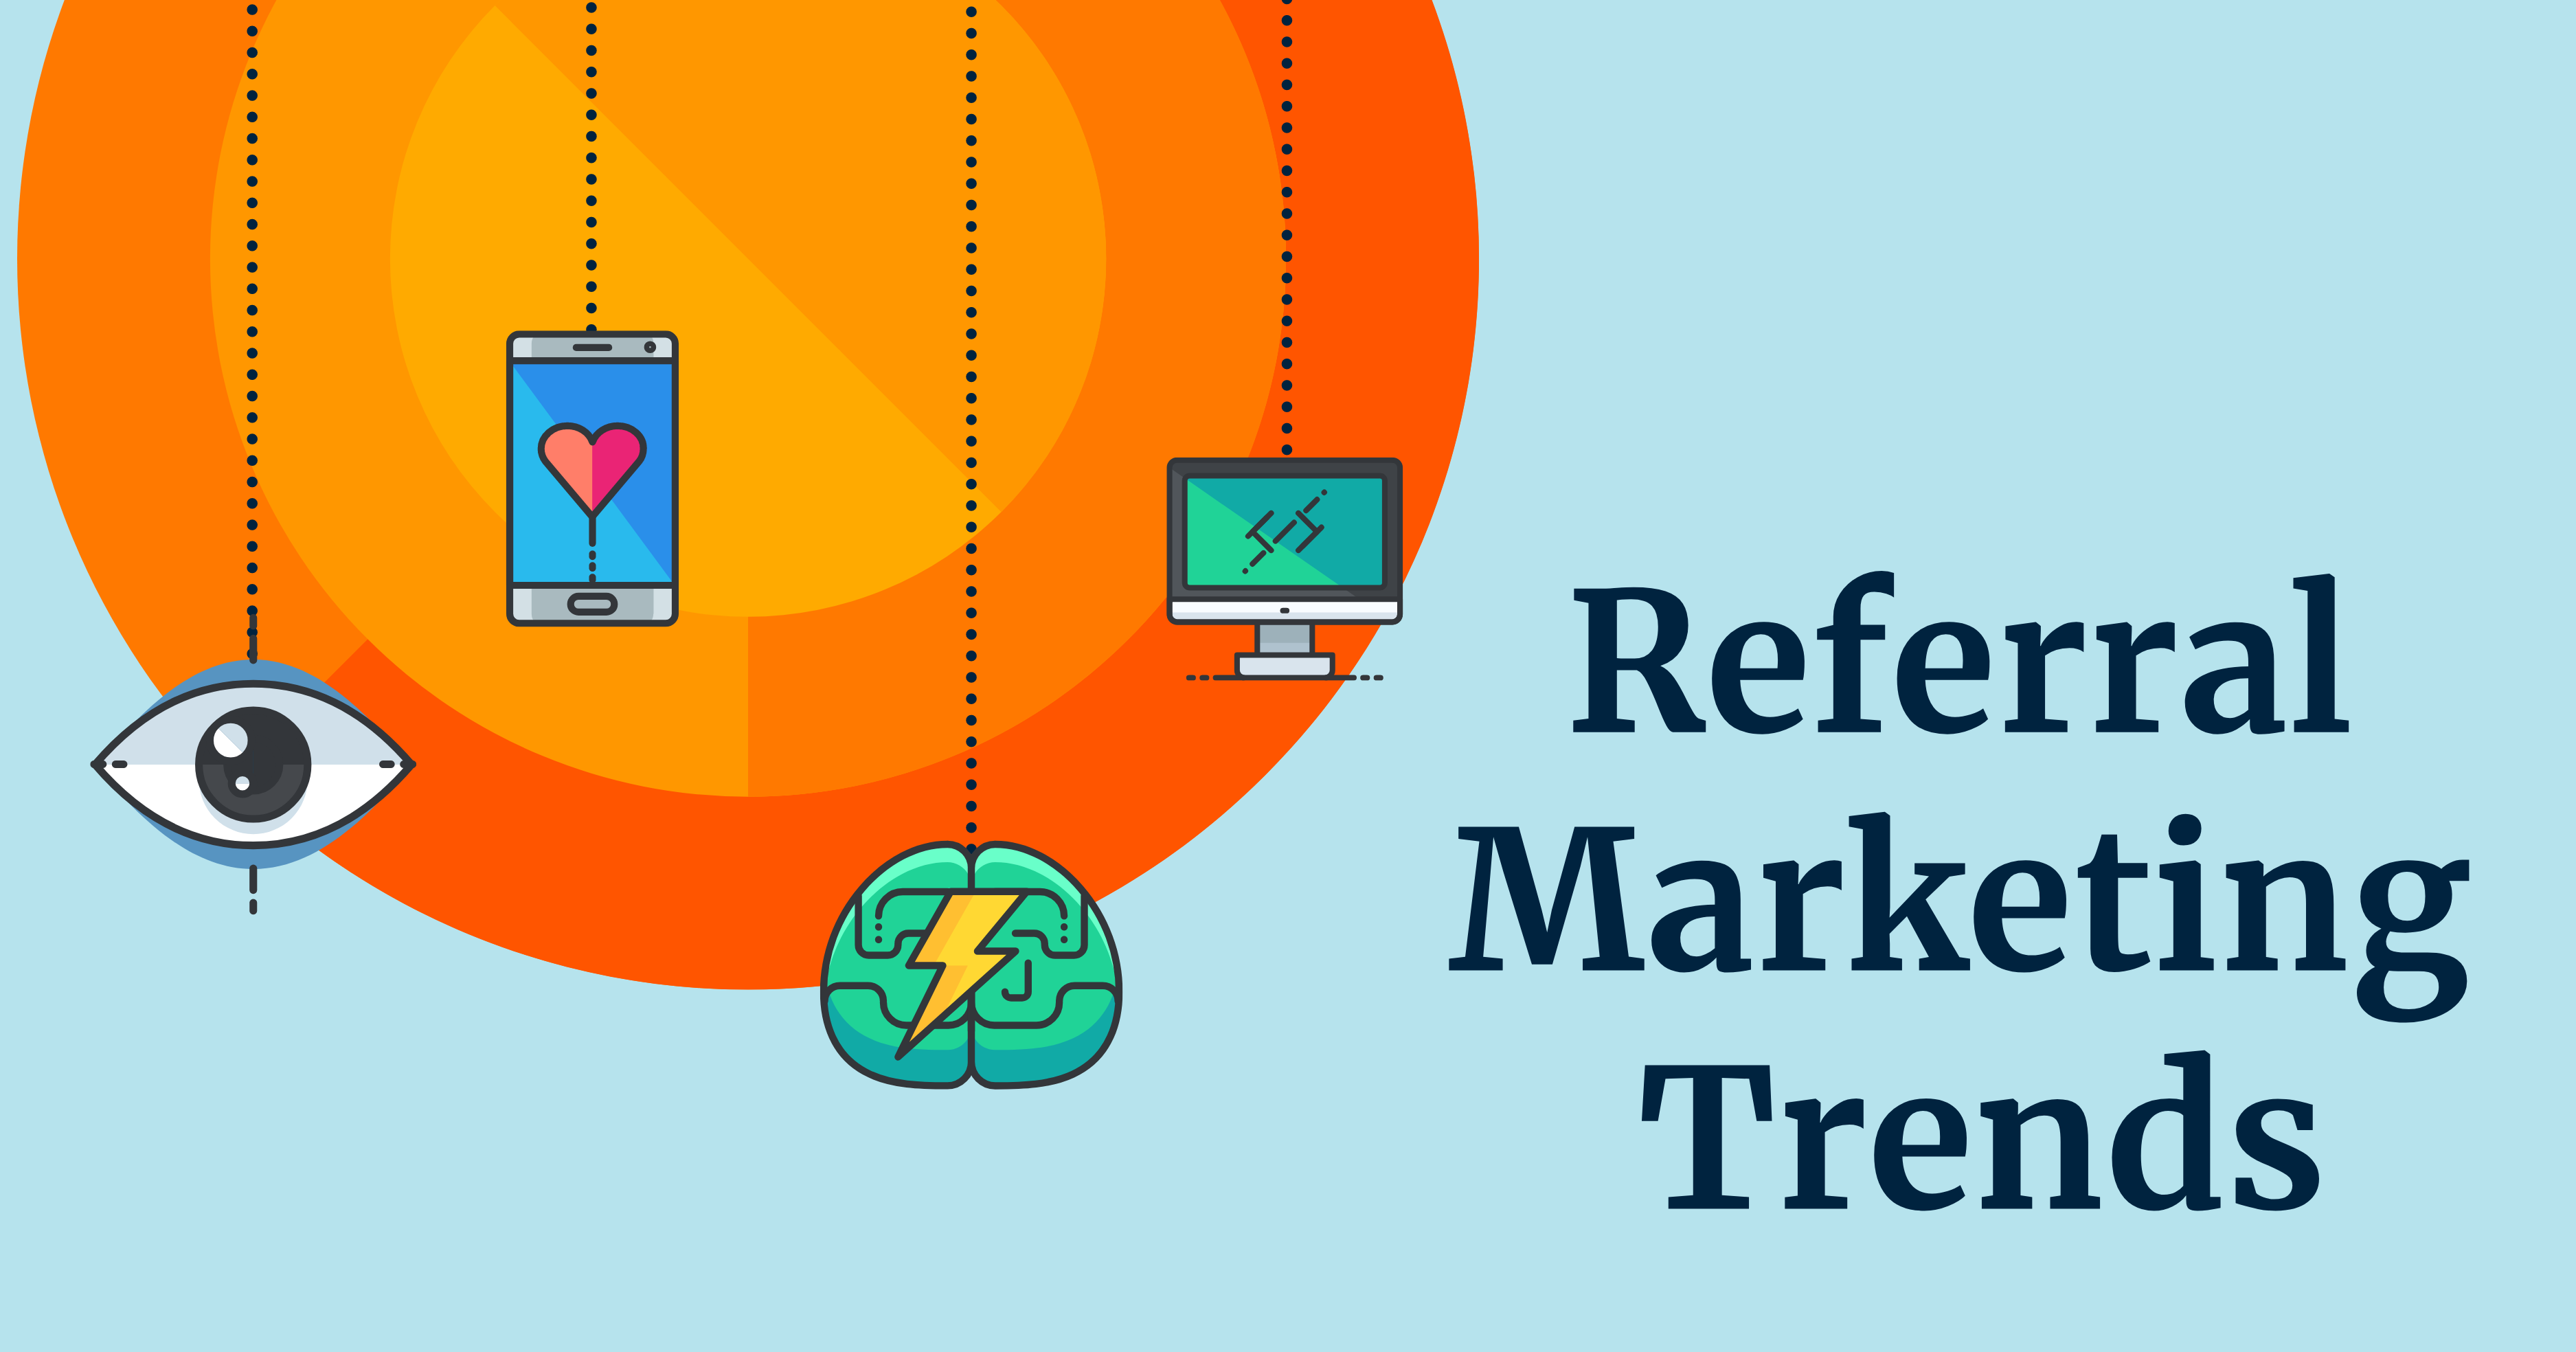 Referral Marketing Trends